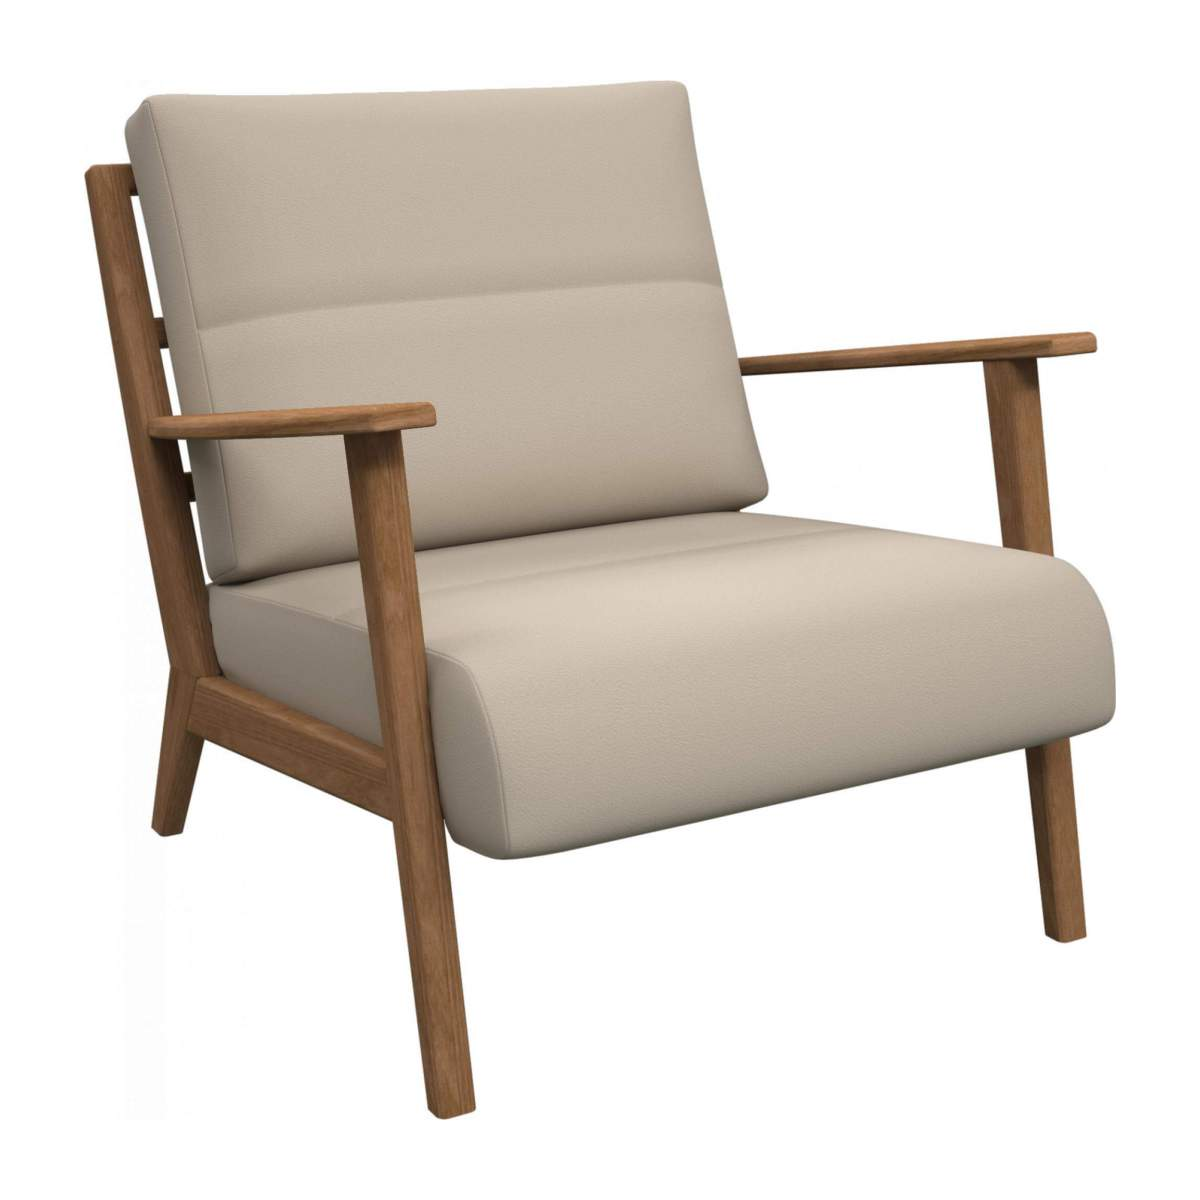 Armchair in Savoy semi-aniline leather, off white n°2